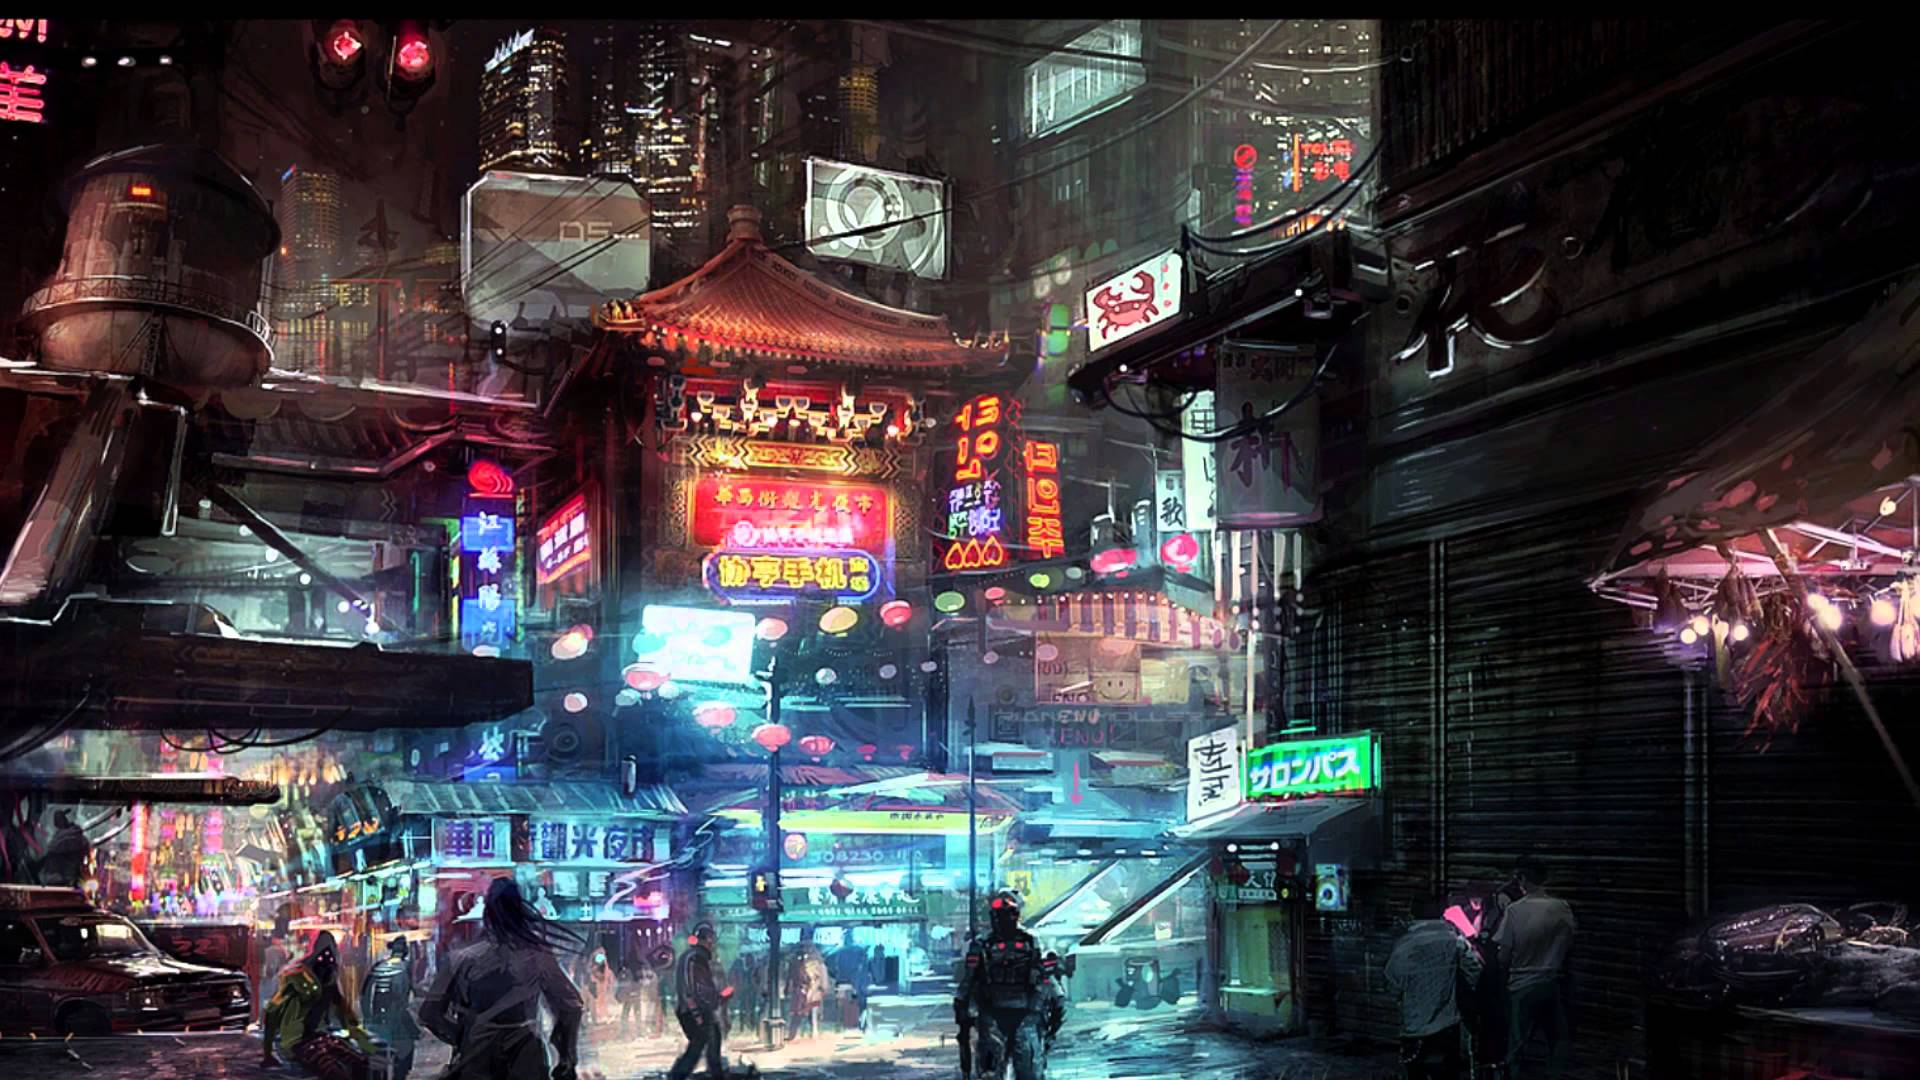 The Best Cyberpunk Anime Masterpieces You Should Watch